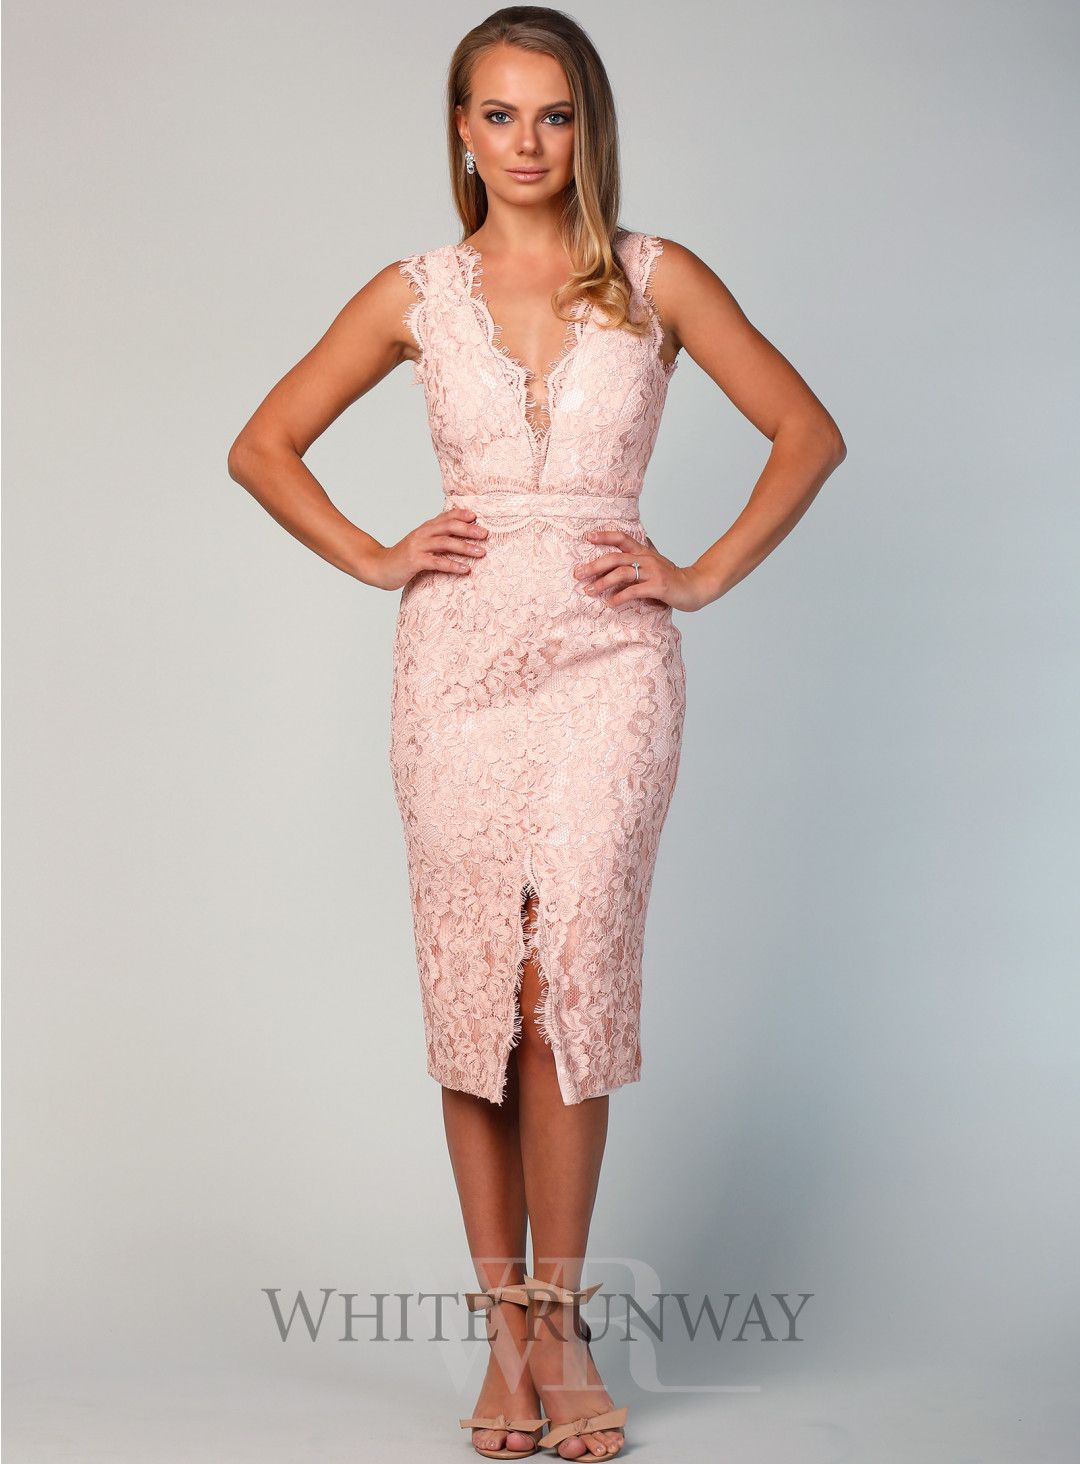 Willa Cocktail Dress A Gorgeous Midi By Samantha Rose A Deep V Neck Style Featuring See Through M Cocktail Dress Wedding Summer Cocktail Dress Cocktail Gowns